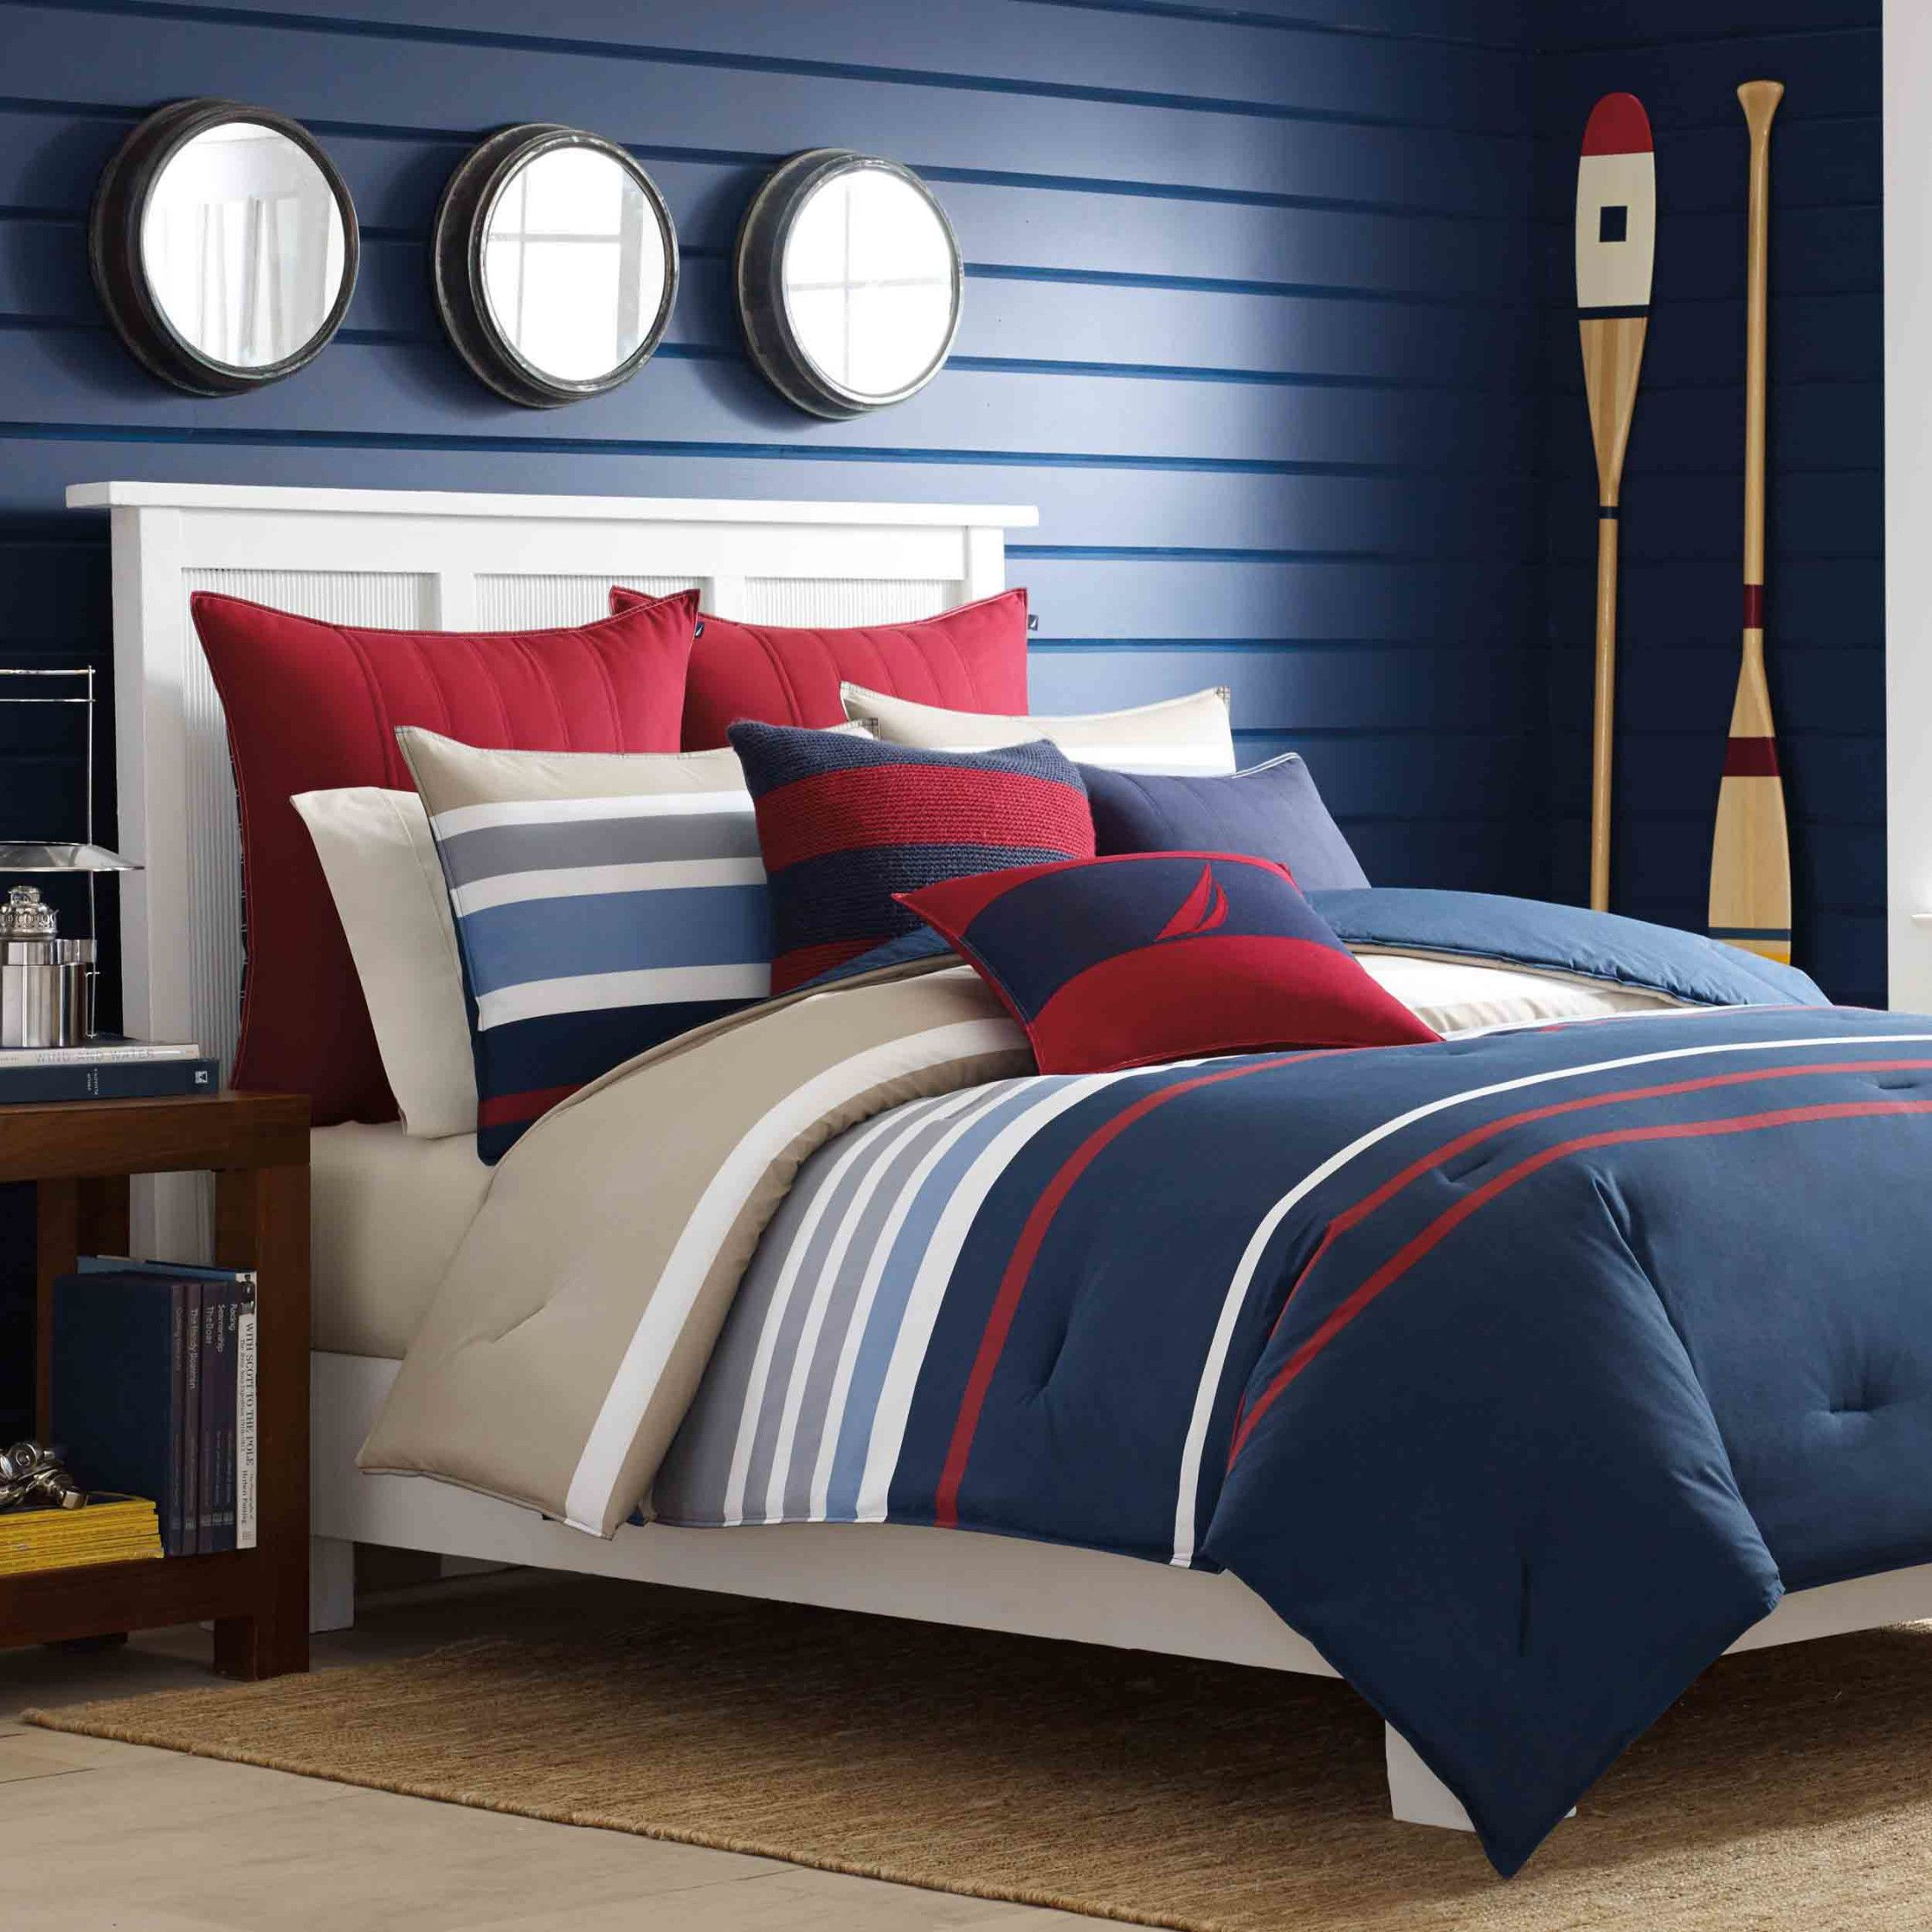 themed coastal comforters quilts cottage bed collection bedroom comforter decor nautical sets bedding sheet beach